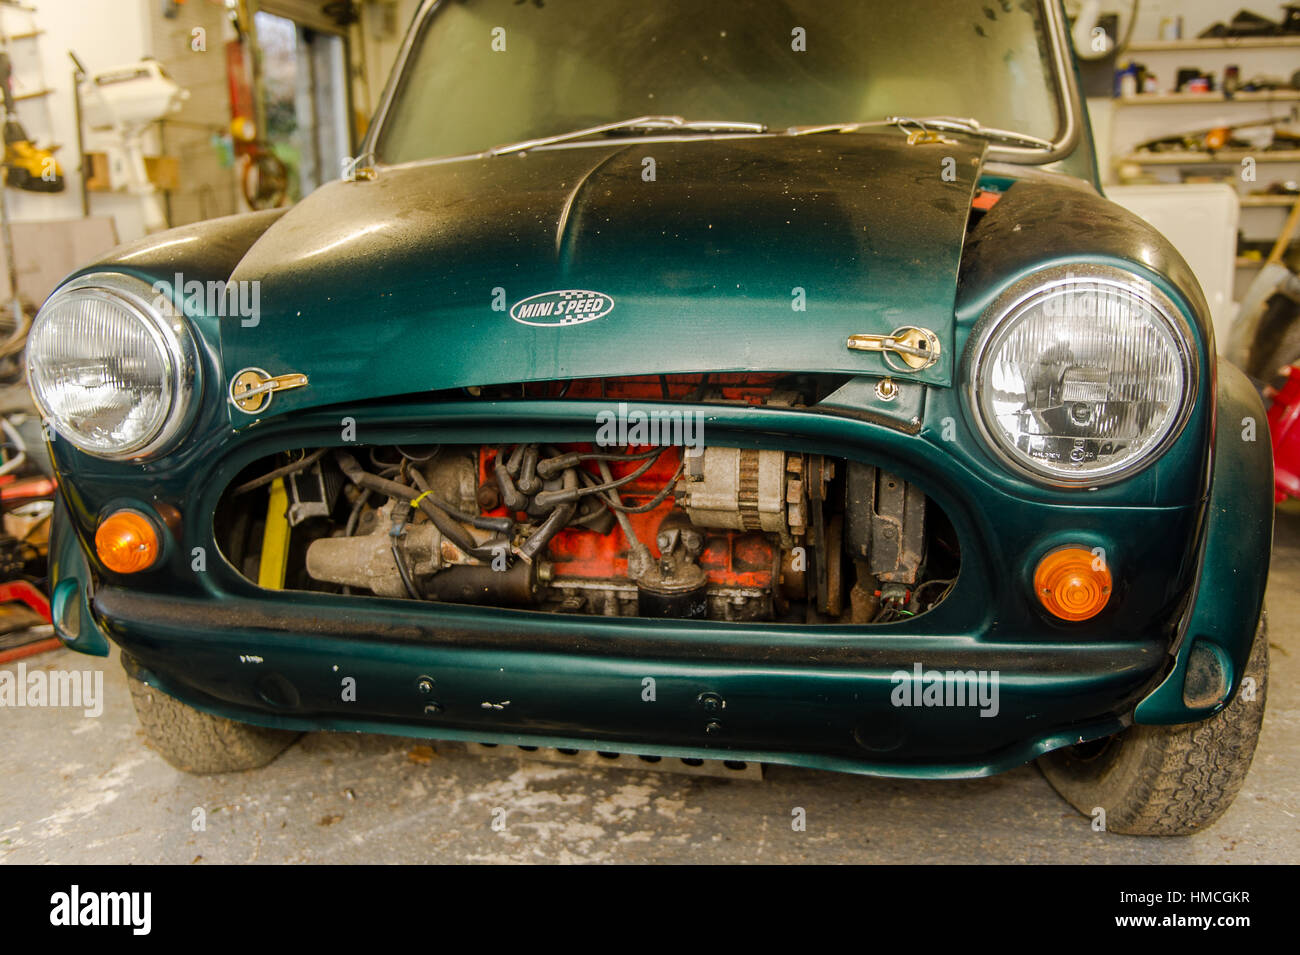 An old/classic green Austin Mini Cooper partly taken apart/stripped down for restoration in a domestic garage/workshop. - Stock Image